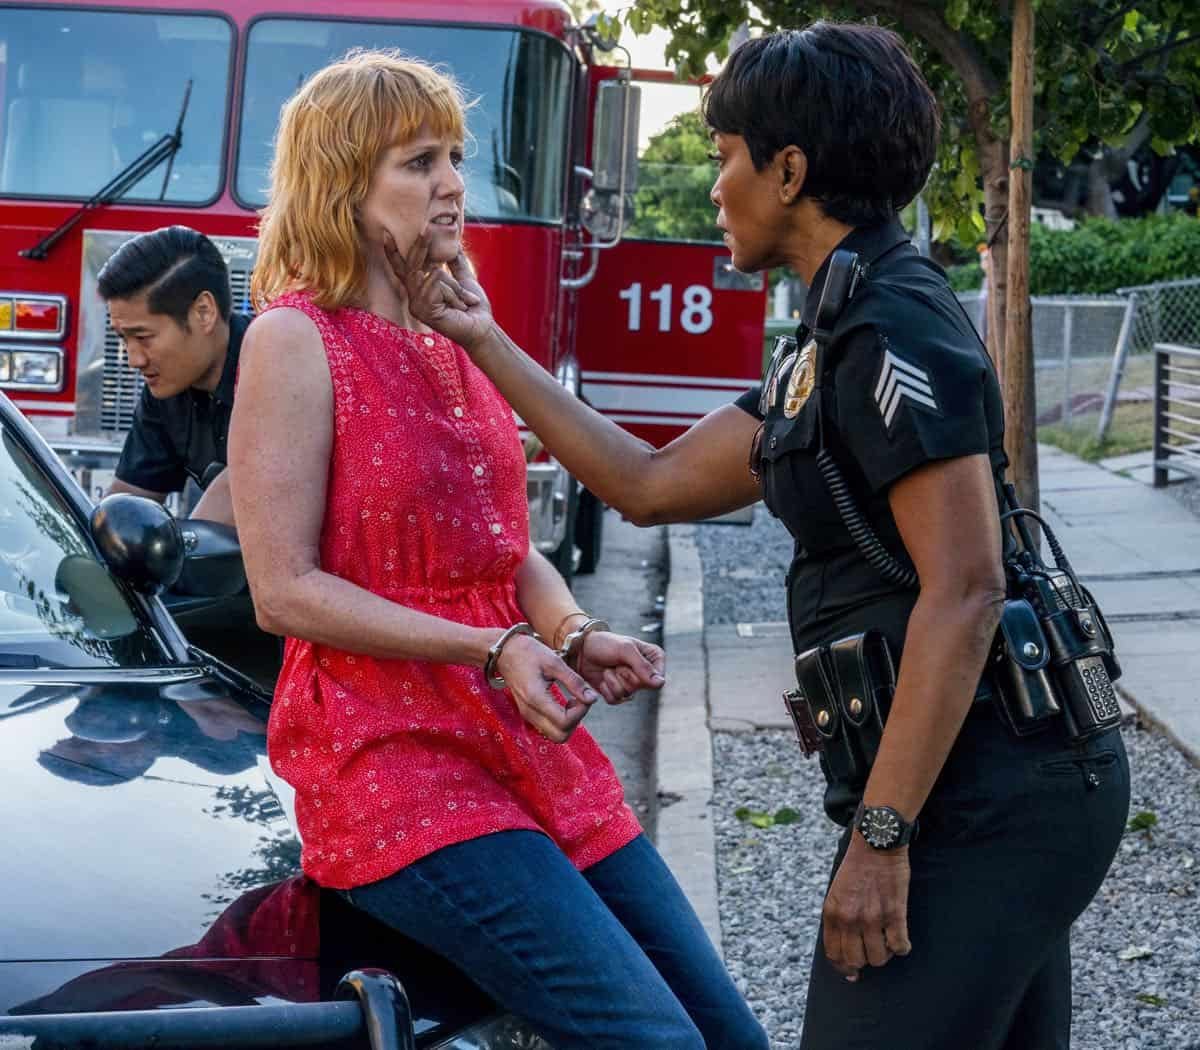 "9-1-1: L-R: Guest star Terryn Westbrook and Angela Bassett in the ""Kids Today"" season premiere episode of 9-1-1 airing Monday, Sep. 23 (8:00-9:00 PM ET/PT) on FOX. © 2019 FOX MEDIA LLC. CR: Jack Zeman / FOX."